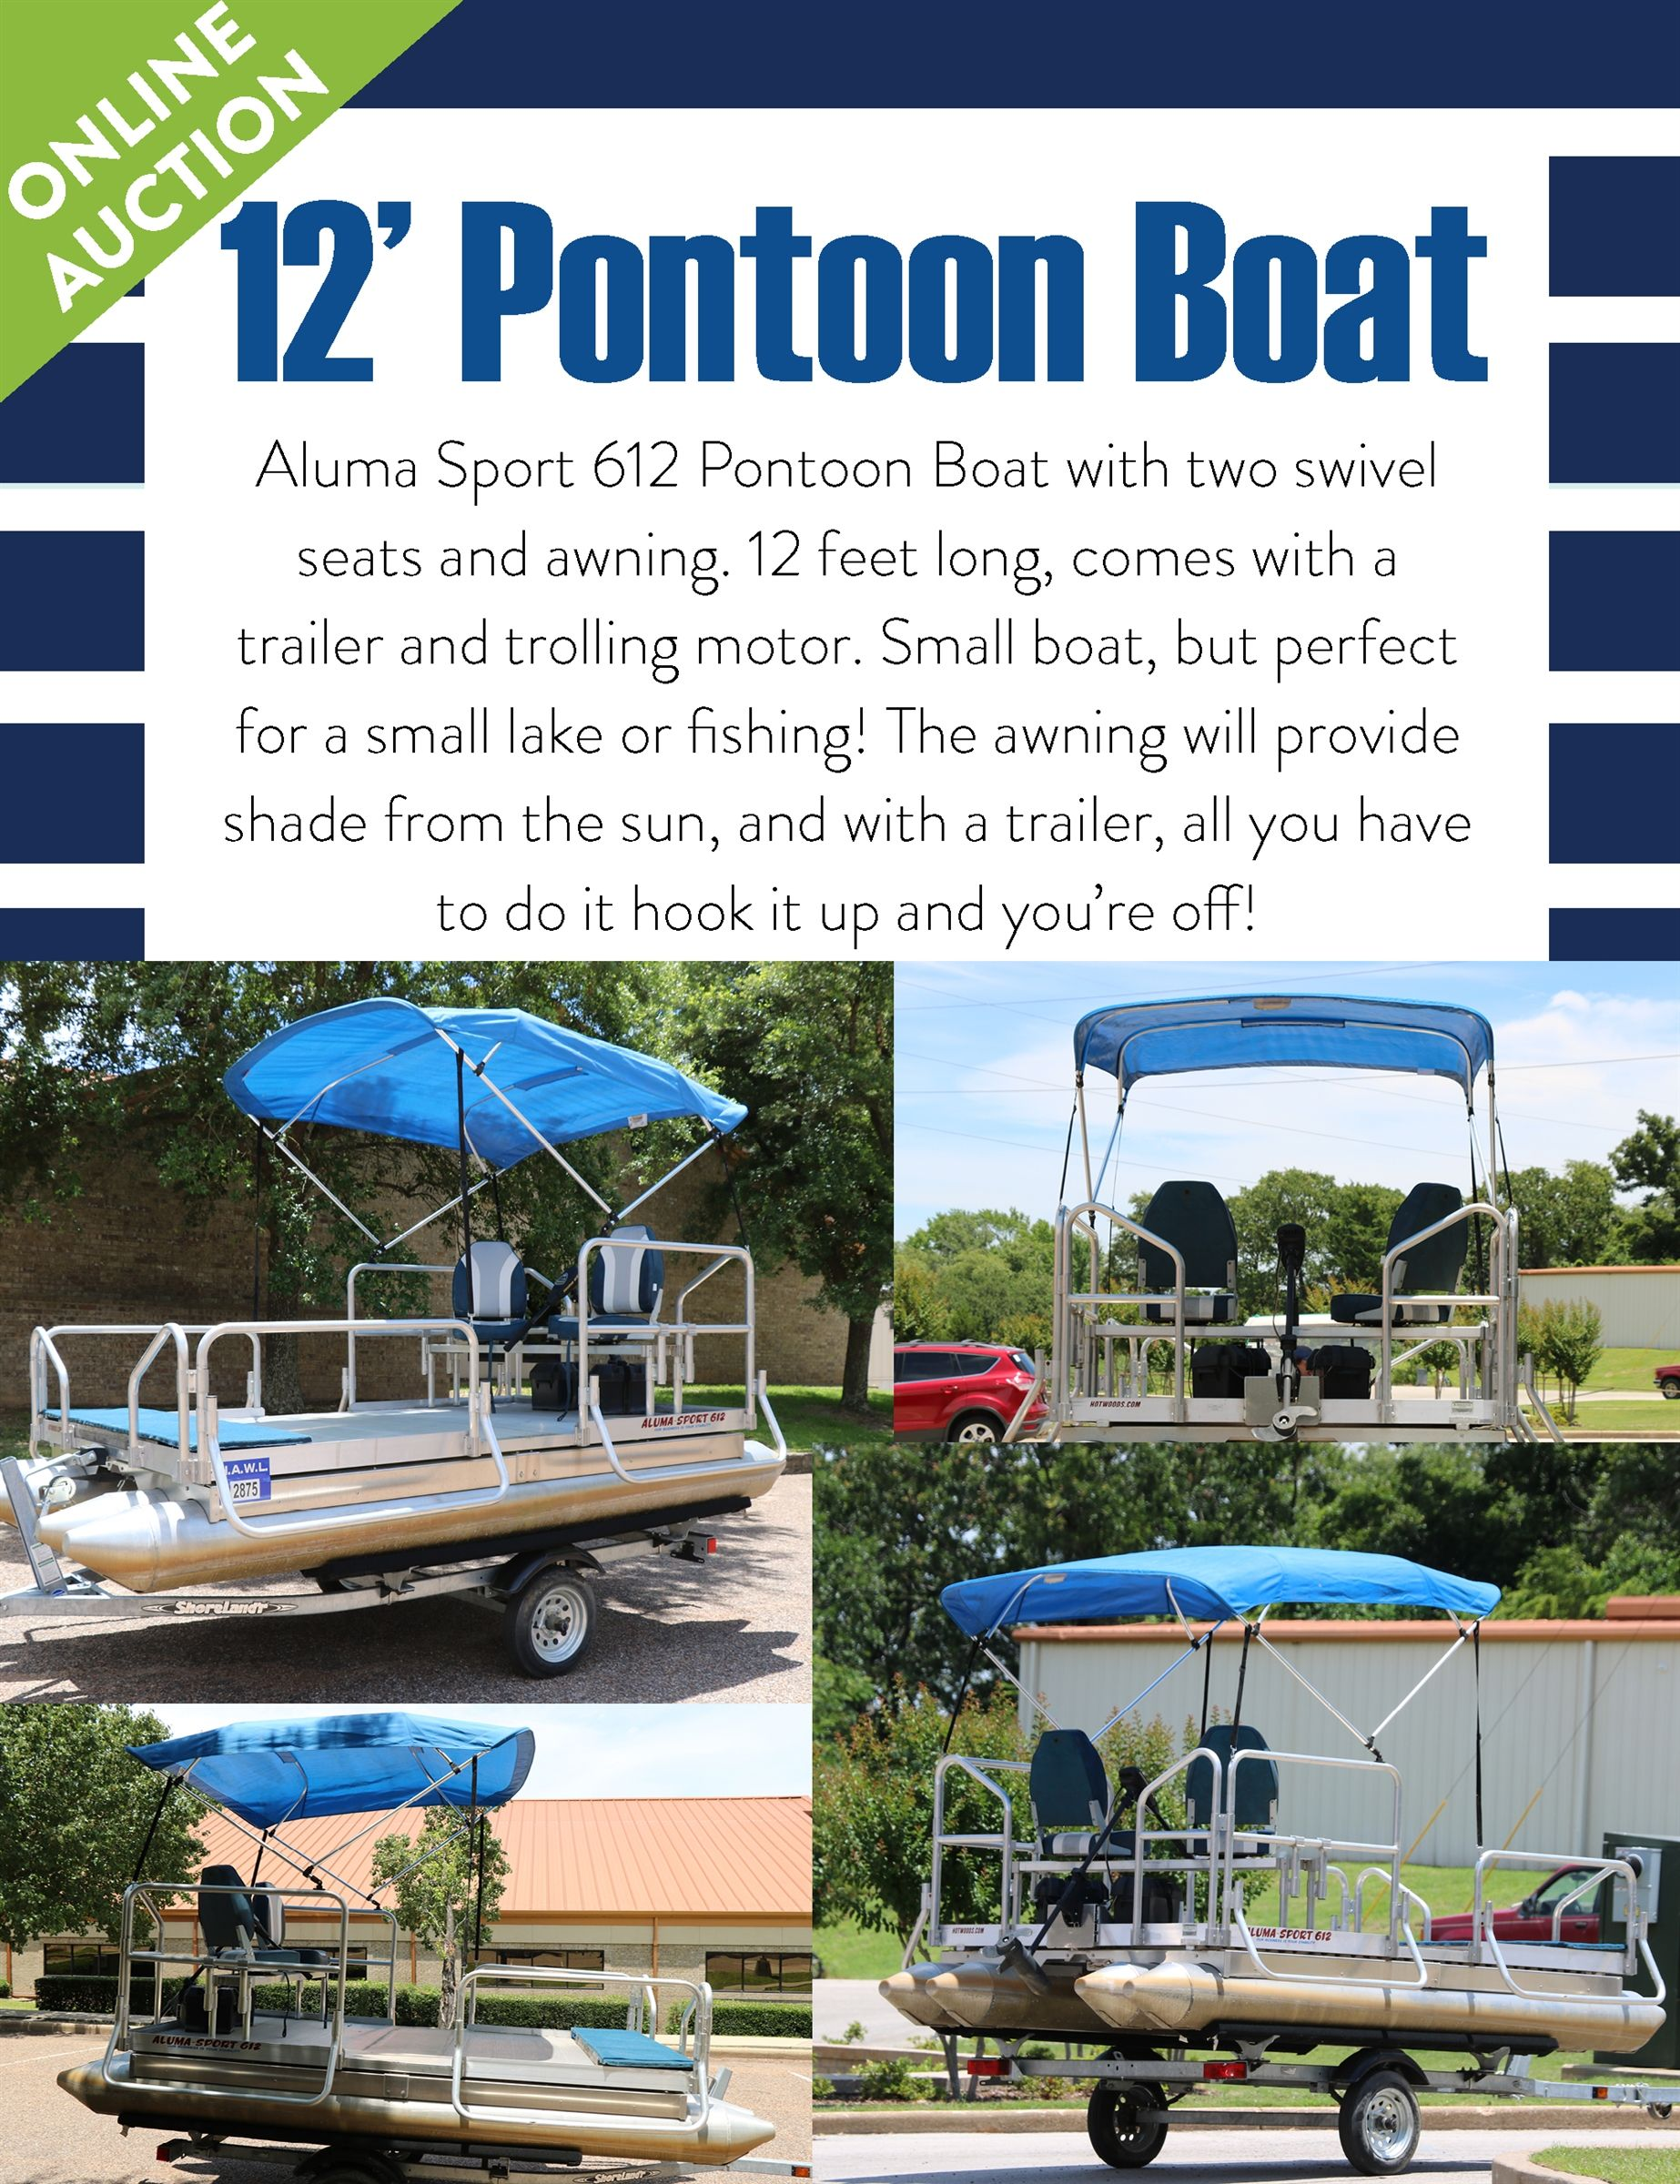 12 foot Pontoon Boat with Trailer